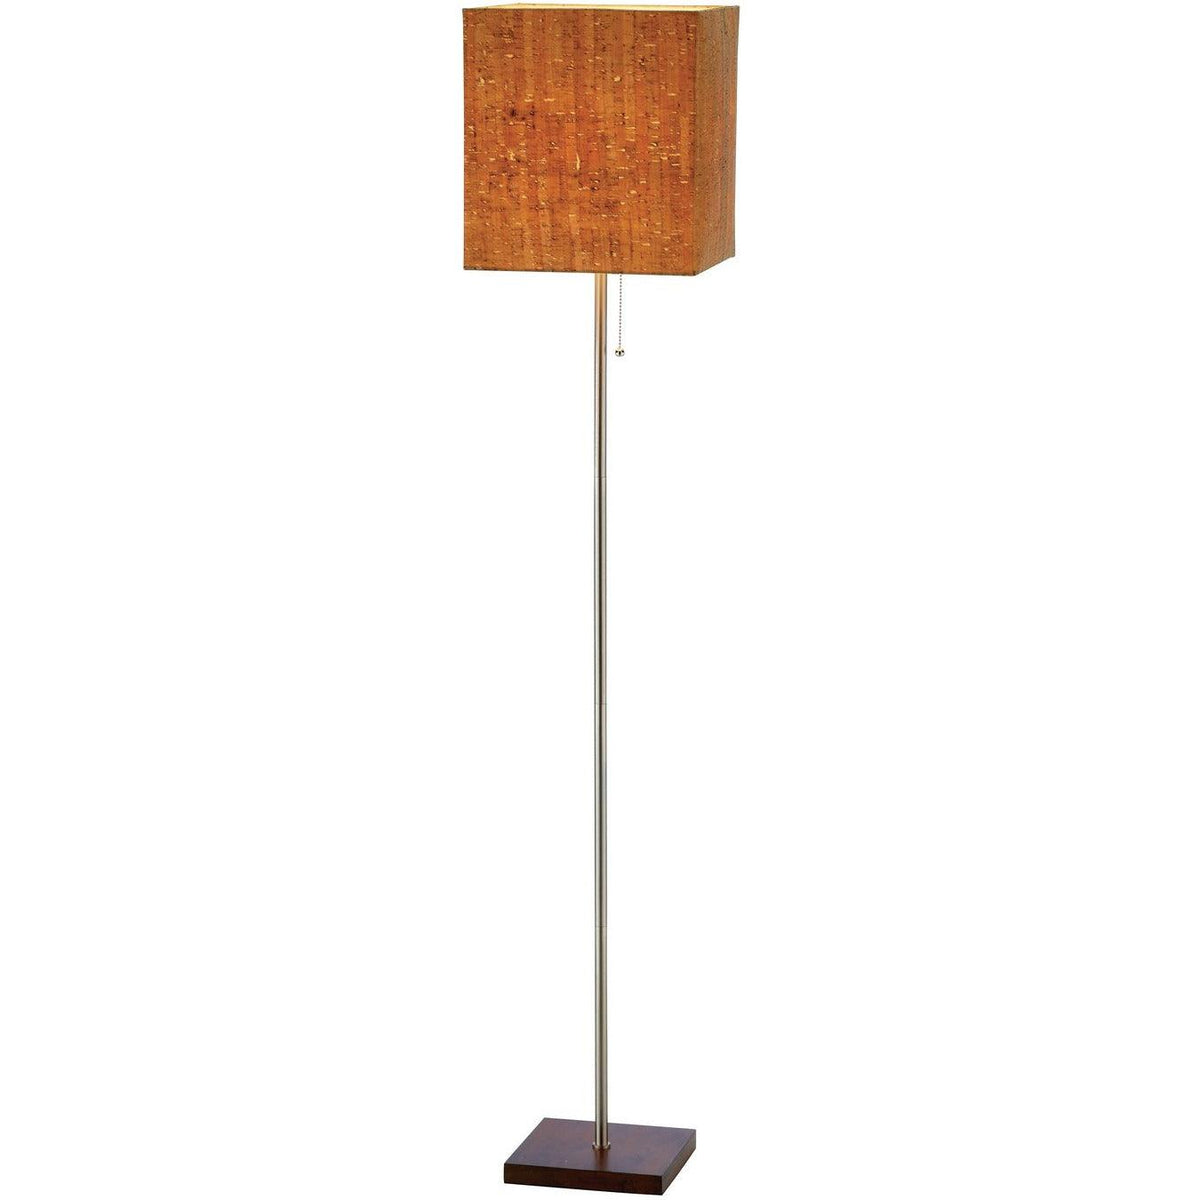 Adesso Home - 4085-15 - One Light Floor Lamp - Sedona - Walnut Rubber wood/Brushed steel